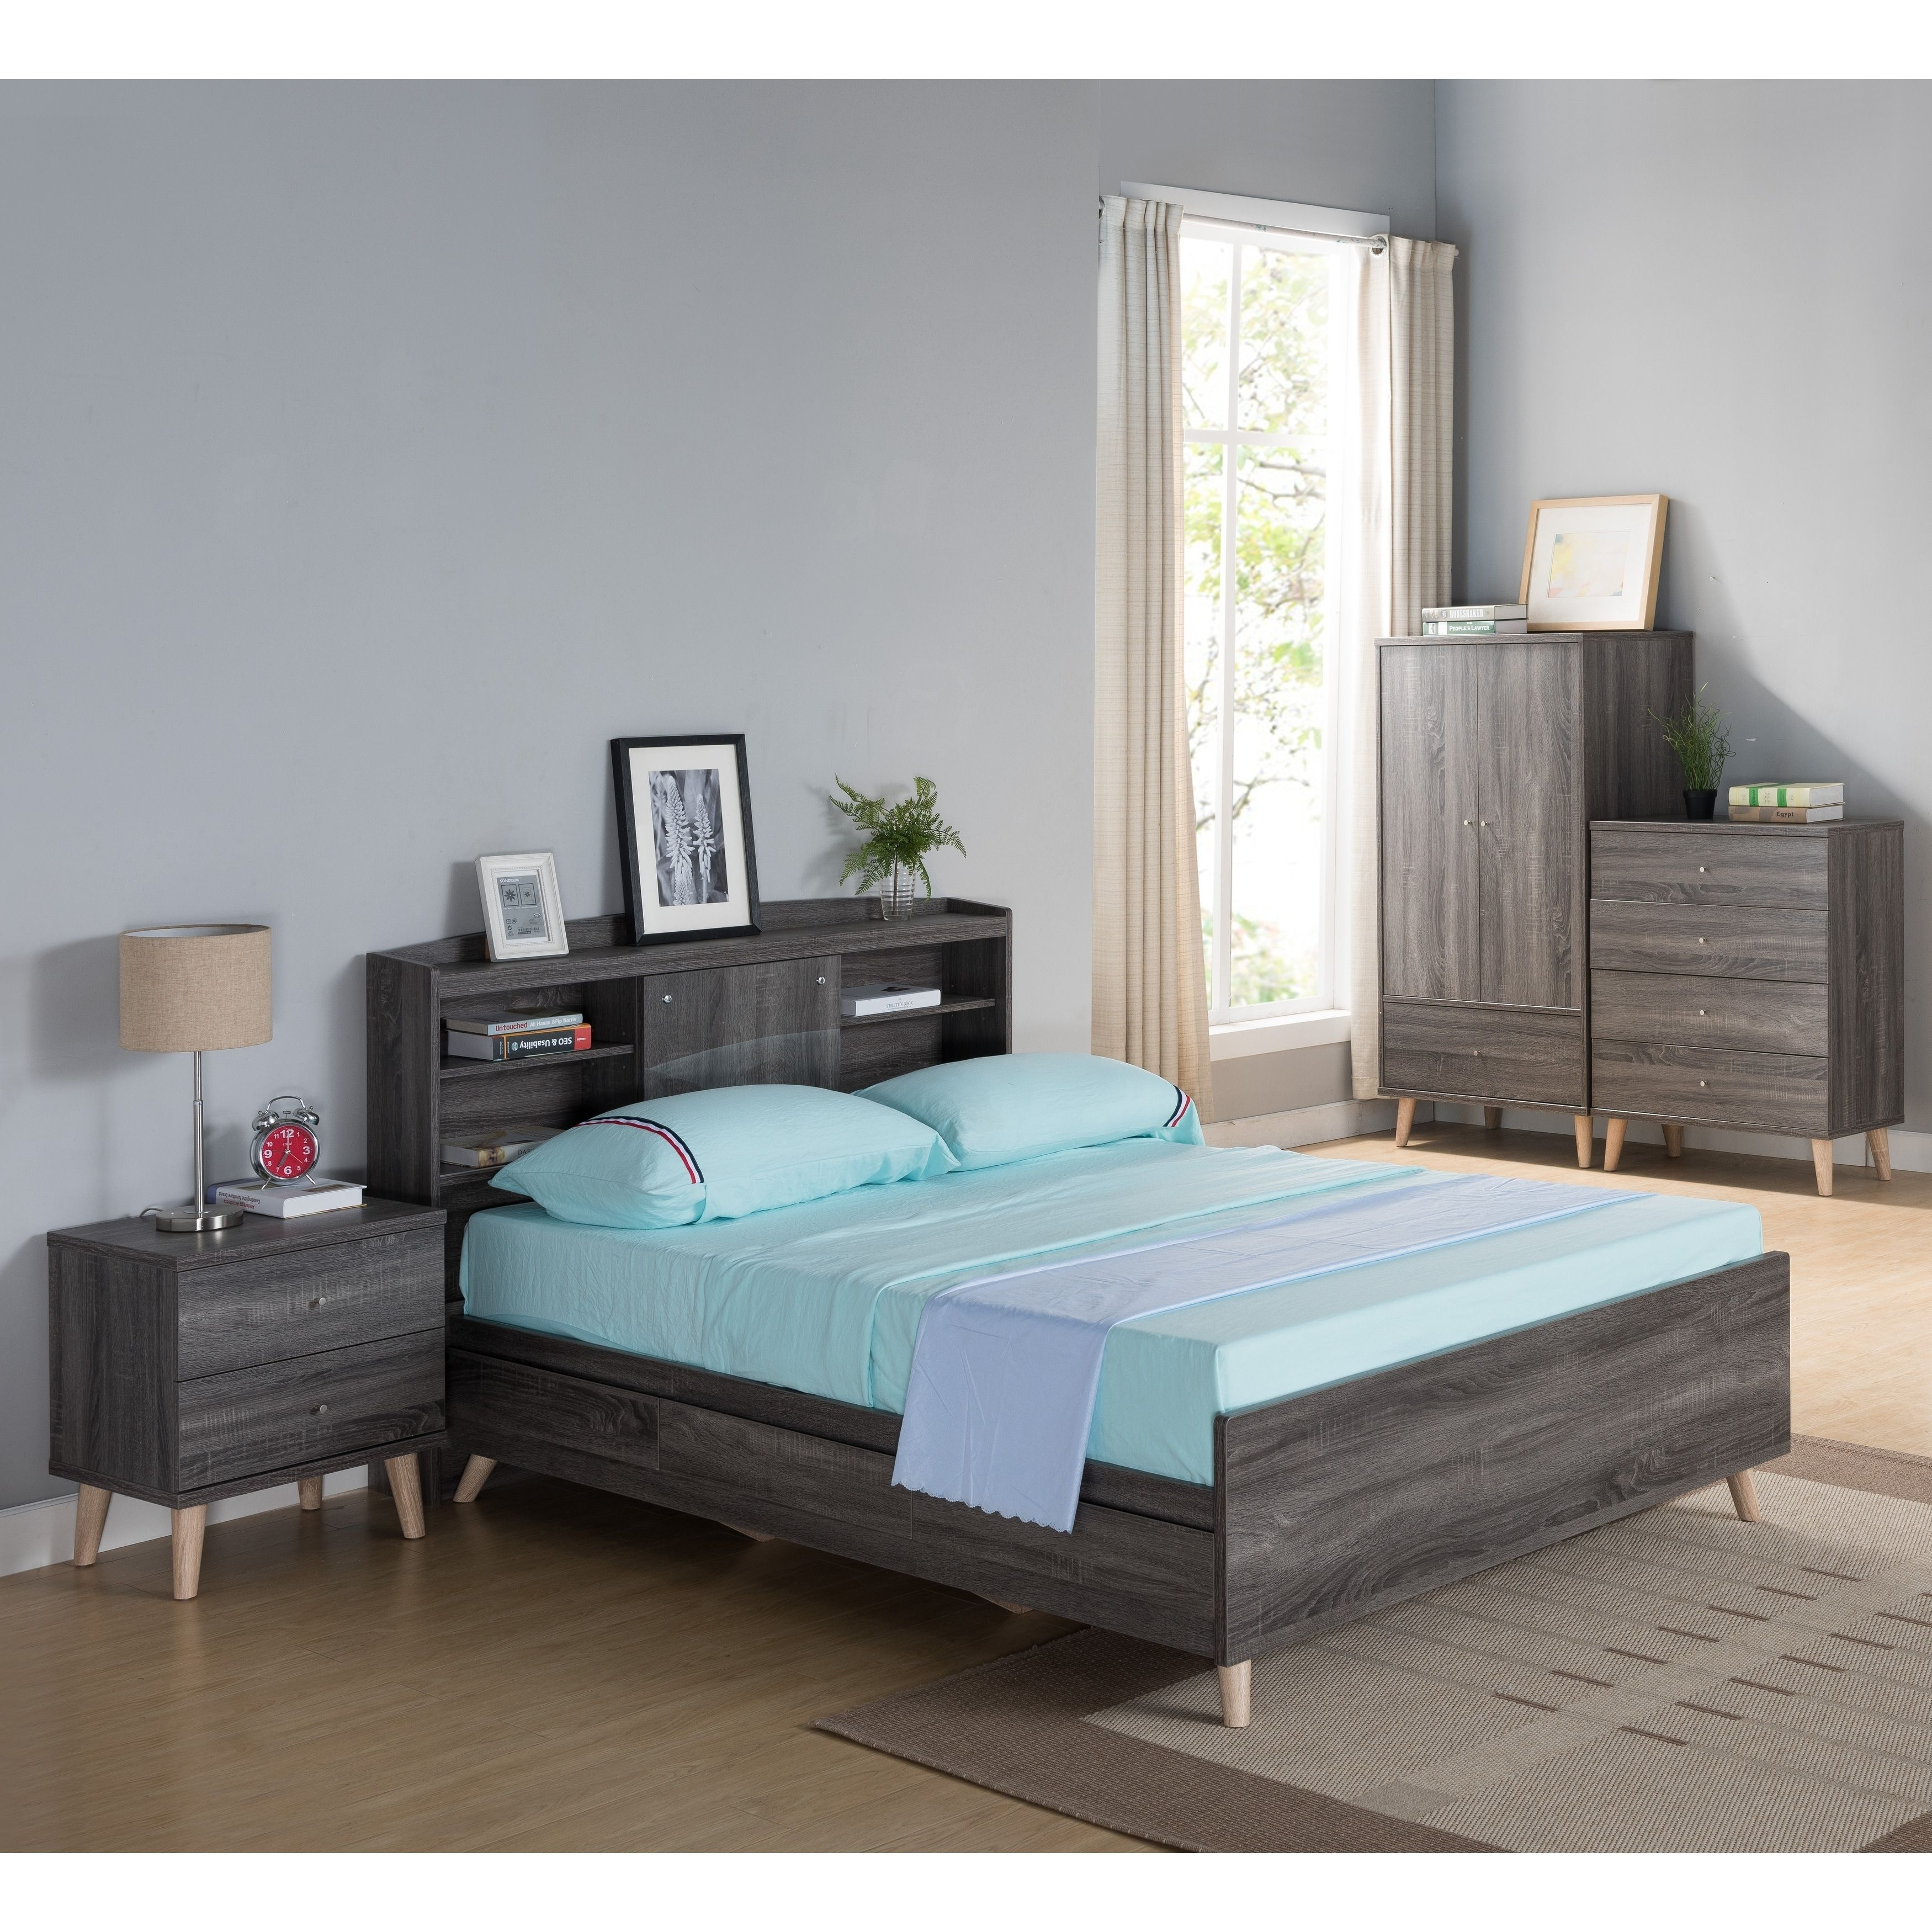 Riley Contemporary Distressed Grey Platform Storage Bed With Headboard Full Double